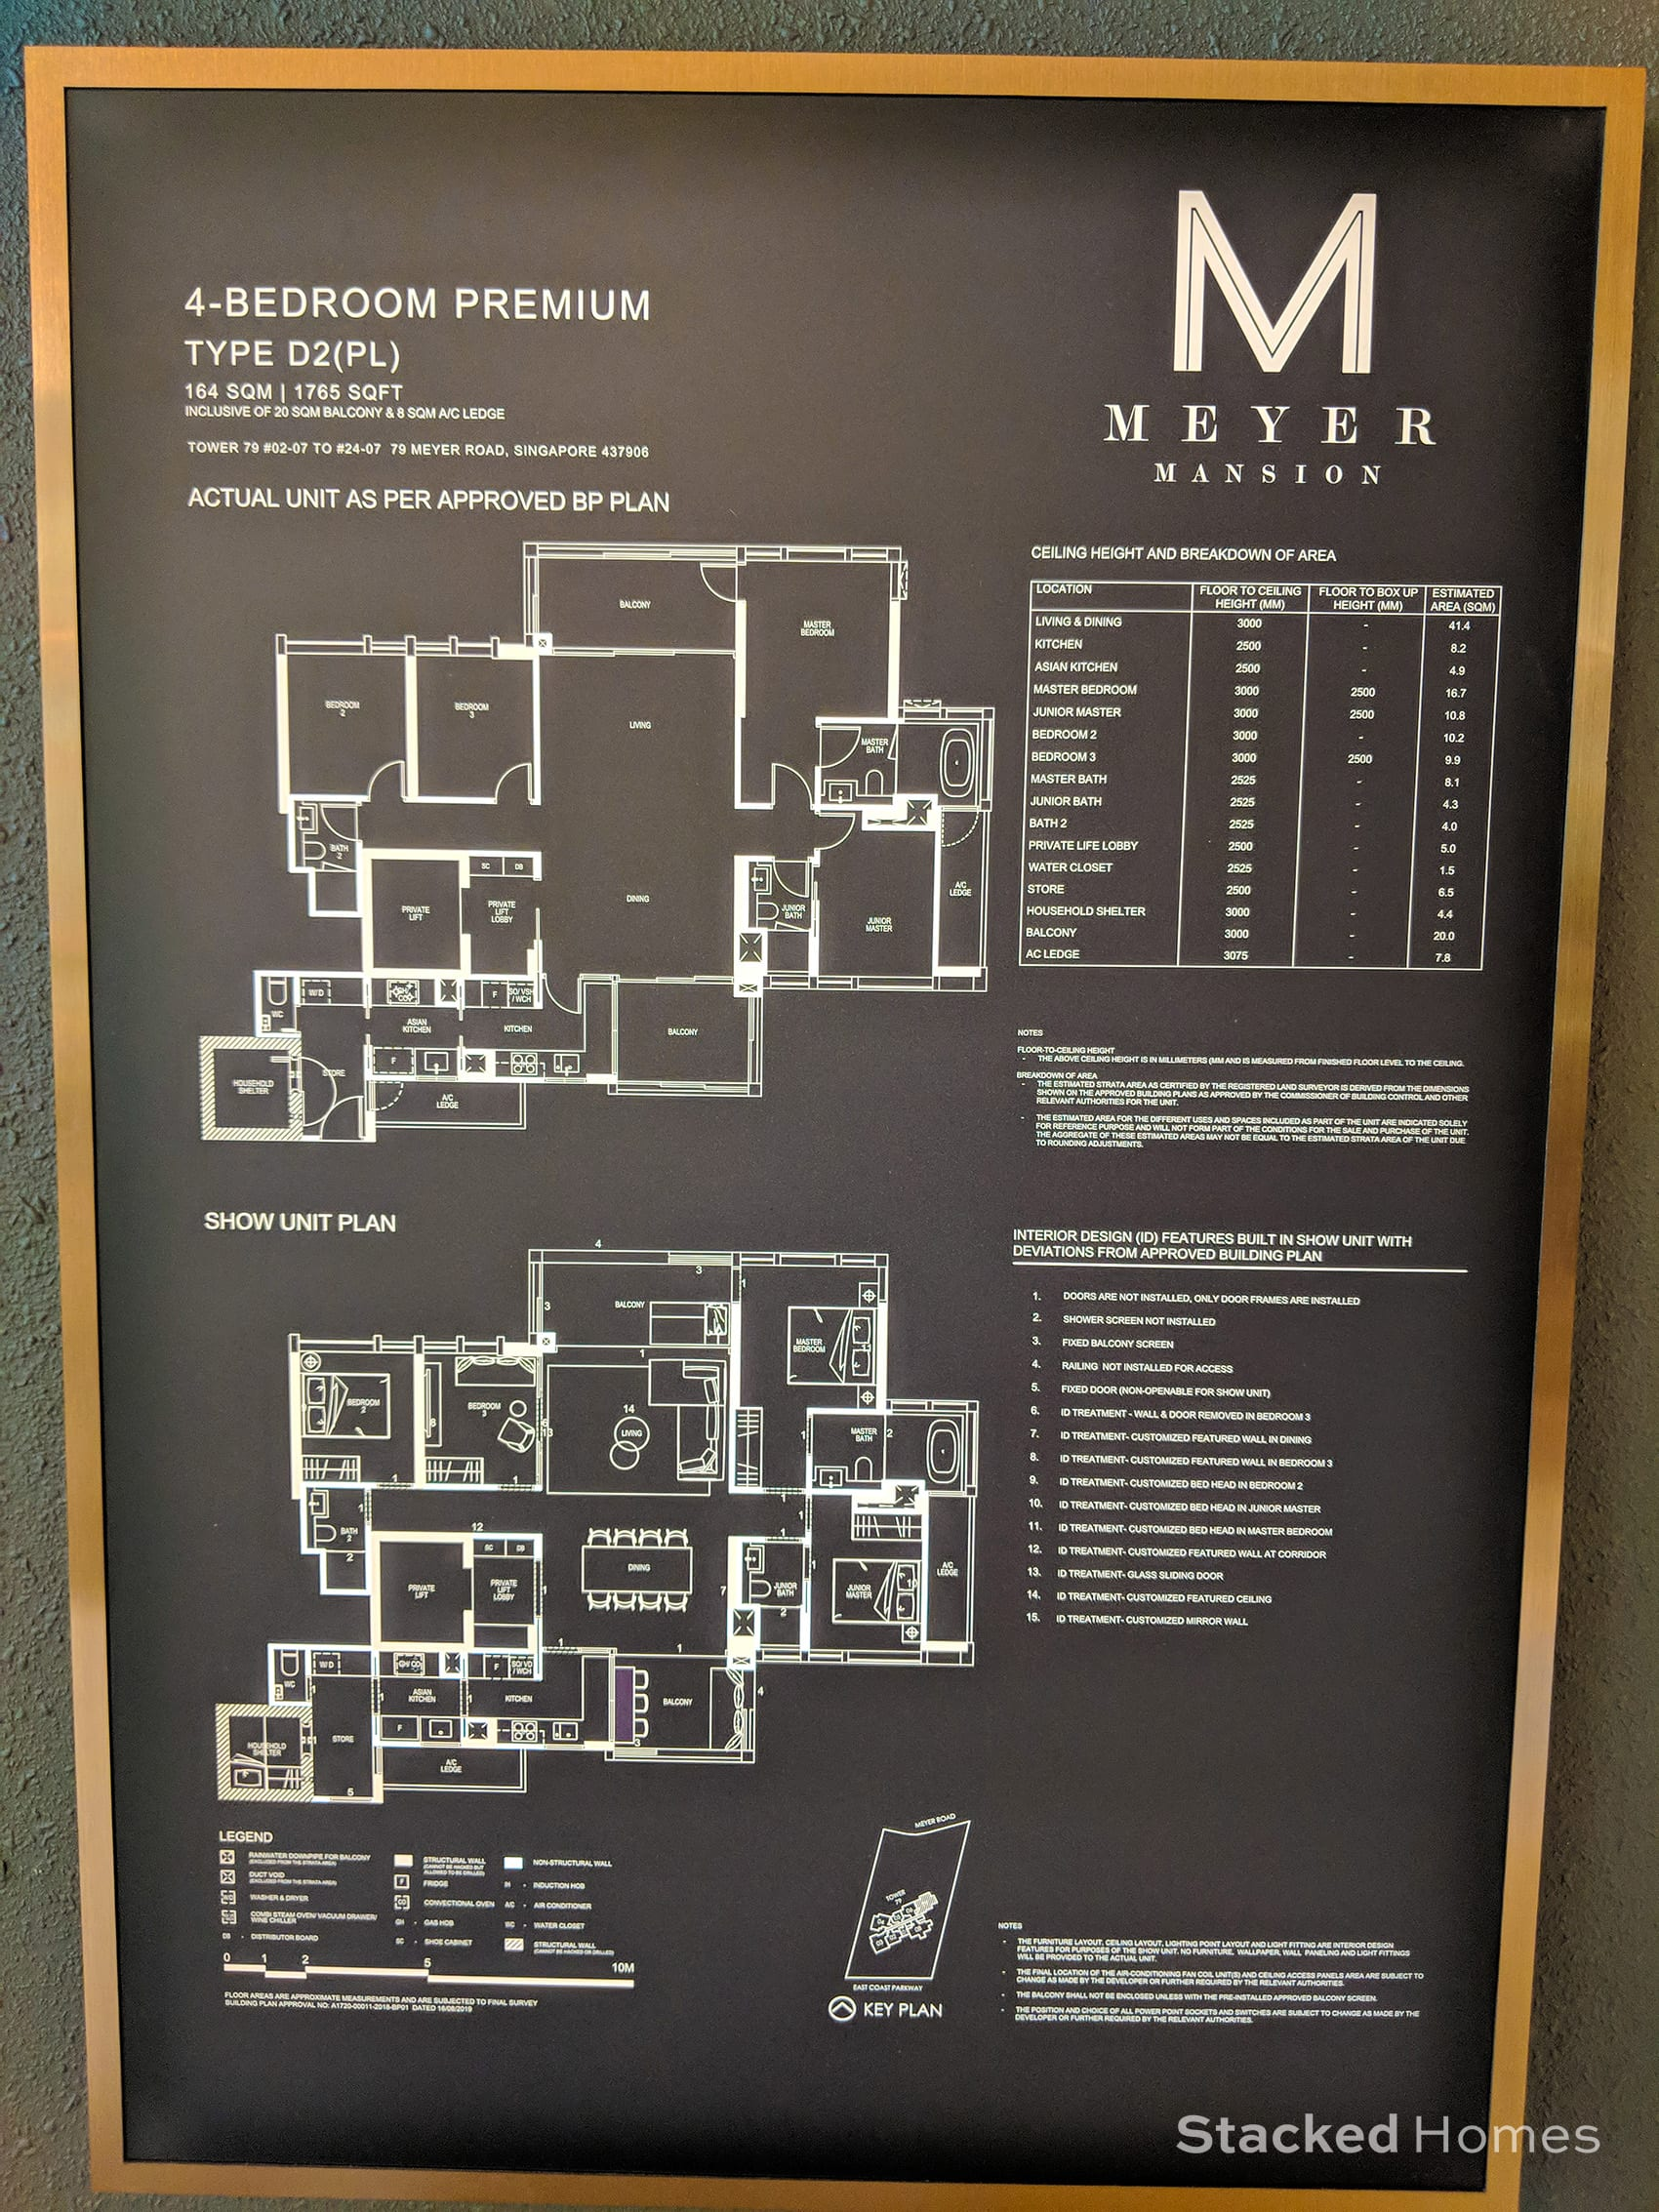 meyer mansion 4 bedroom premium layout